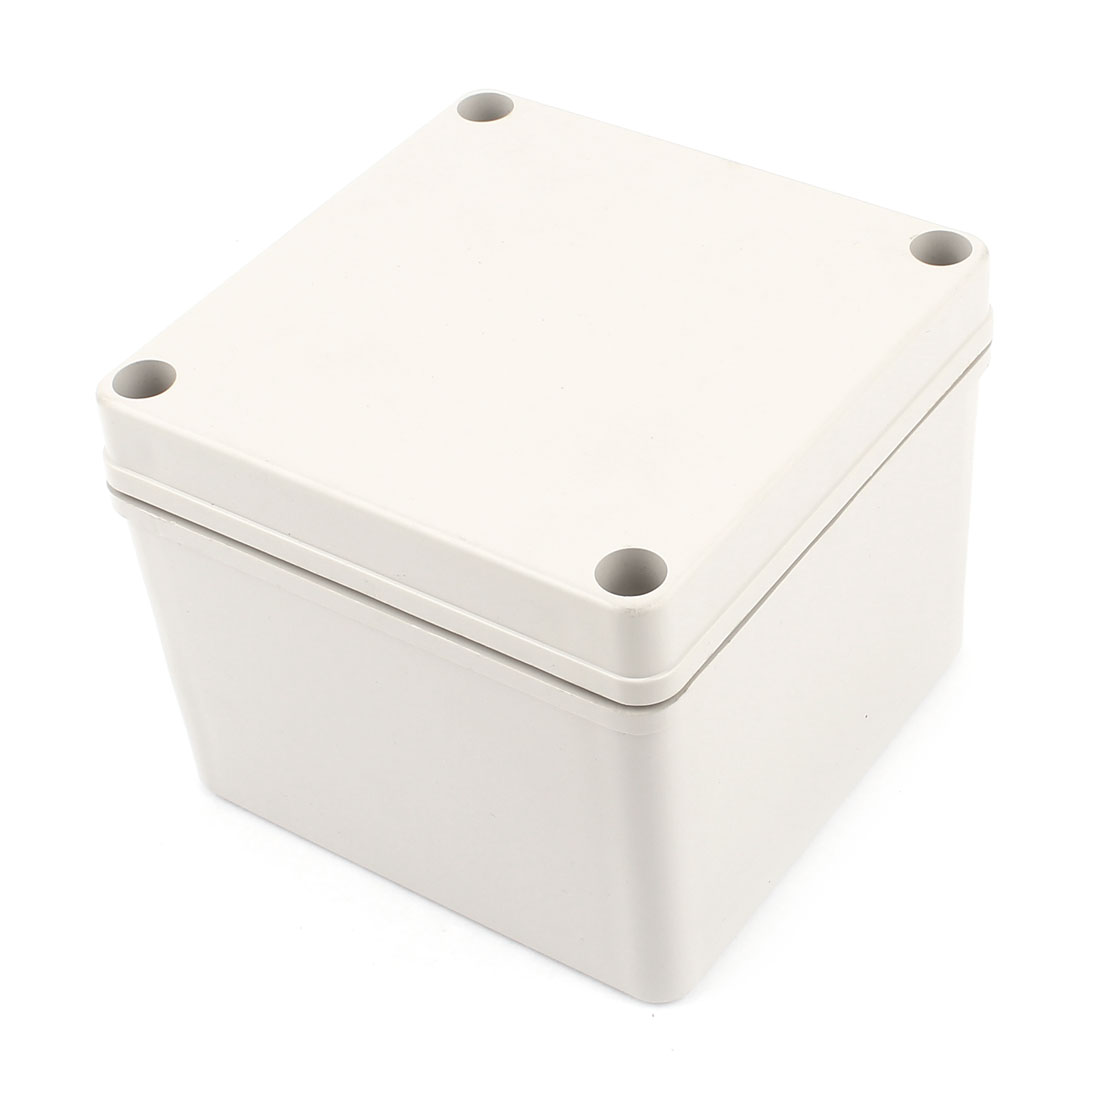 125mm x 125mm x 100mm Waterproof Plastic Sealed Electrical Junction Box Enclosure